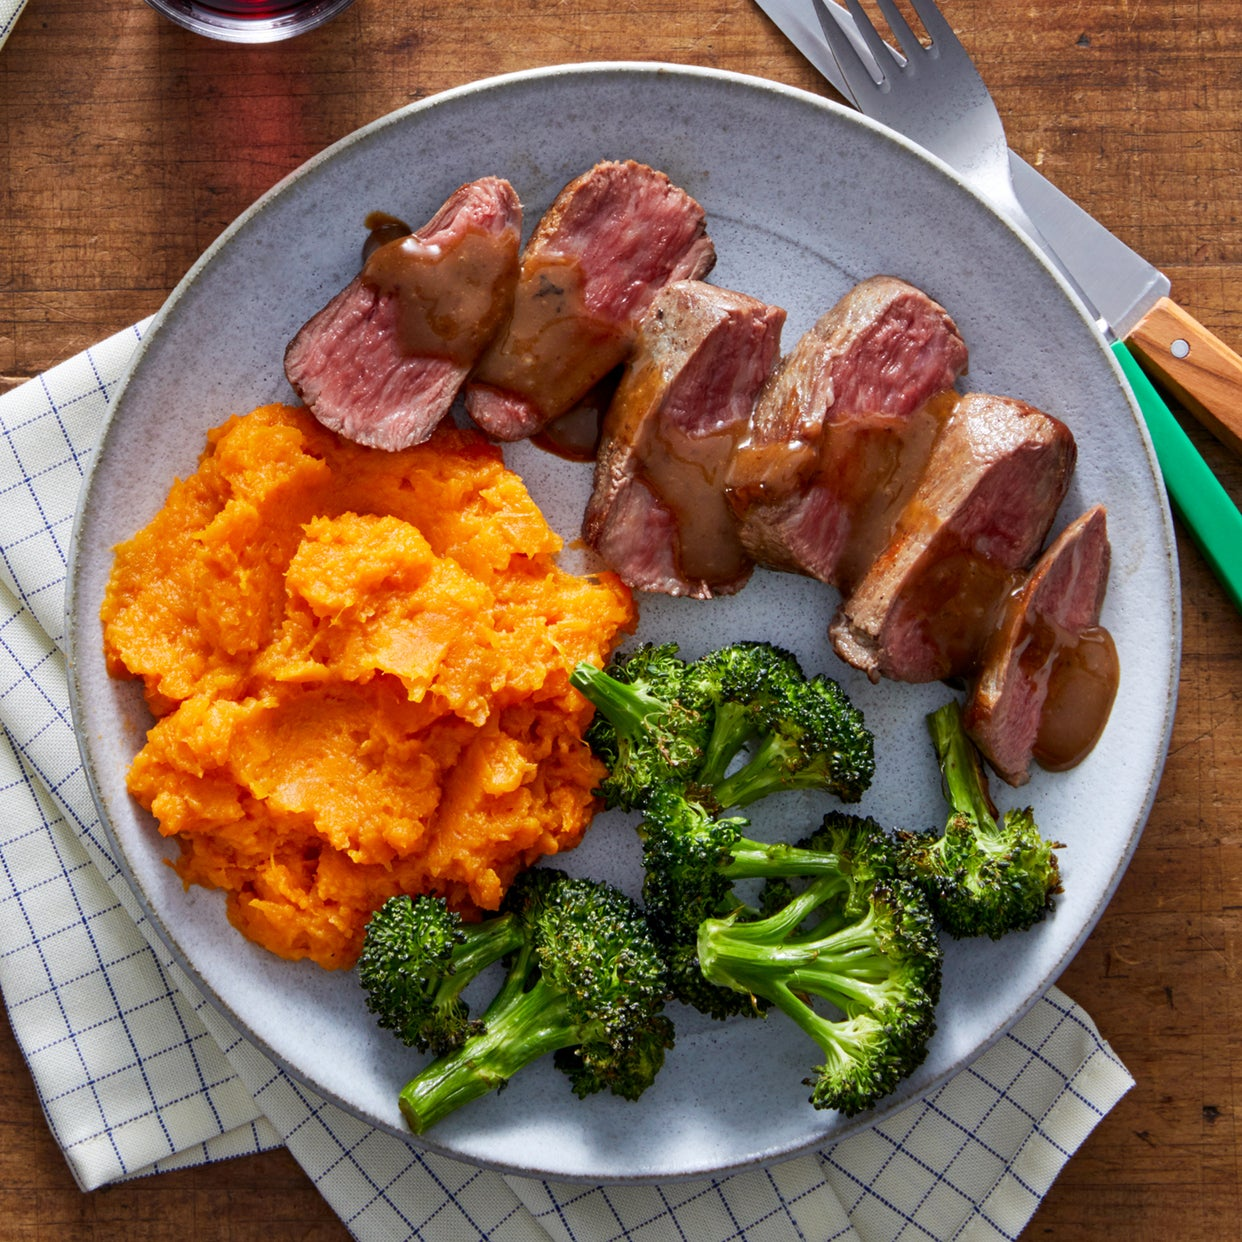 Seared Steaks & Maple Sweet Potato Mash with Roasted Broccoli